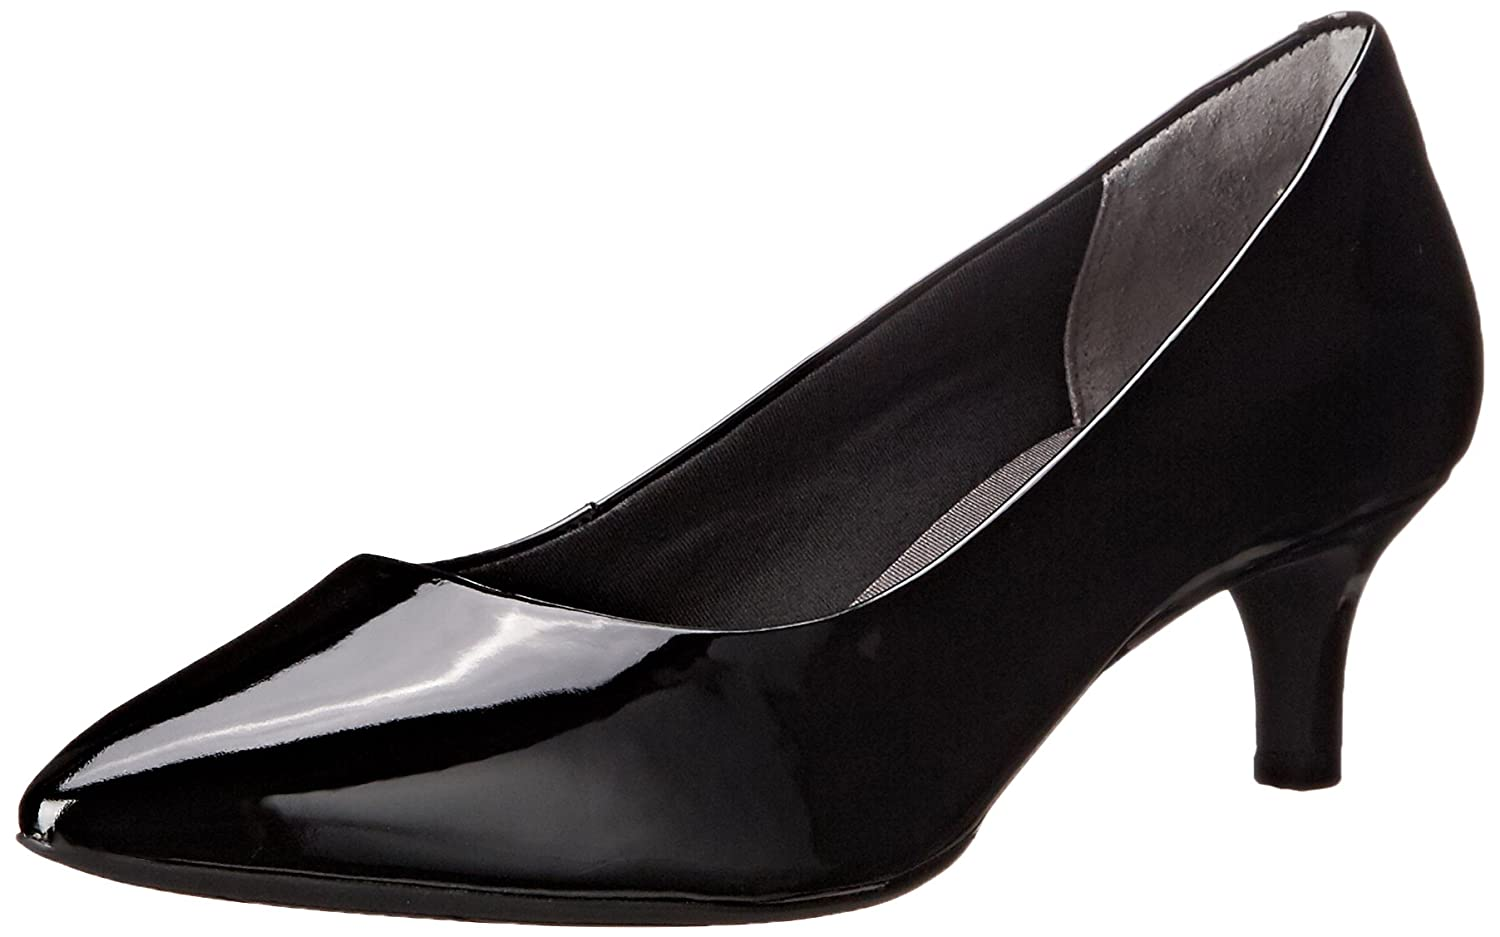 Rockport Women's Total Motion Kalila Dress Pump B013QSAI0E 6.5 W US|Black Patent